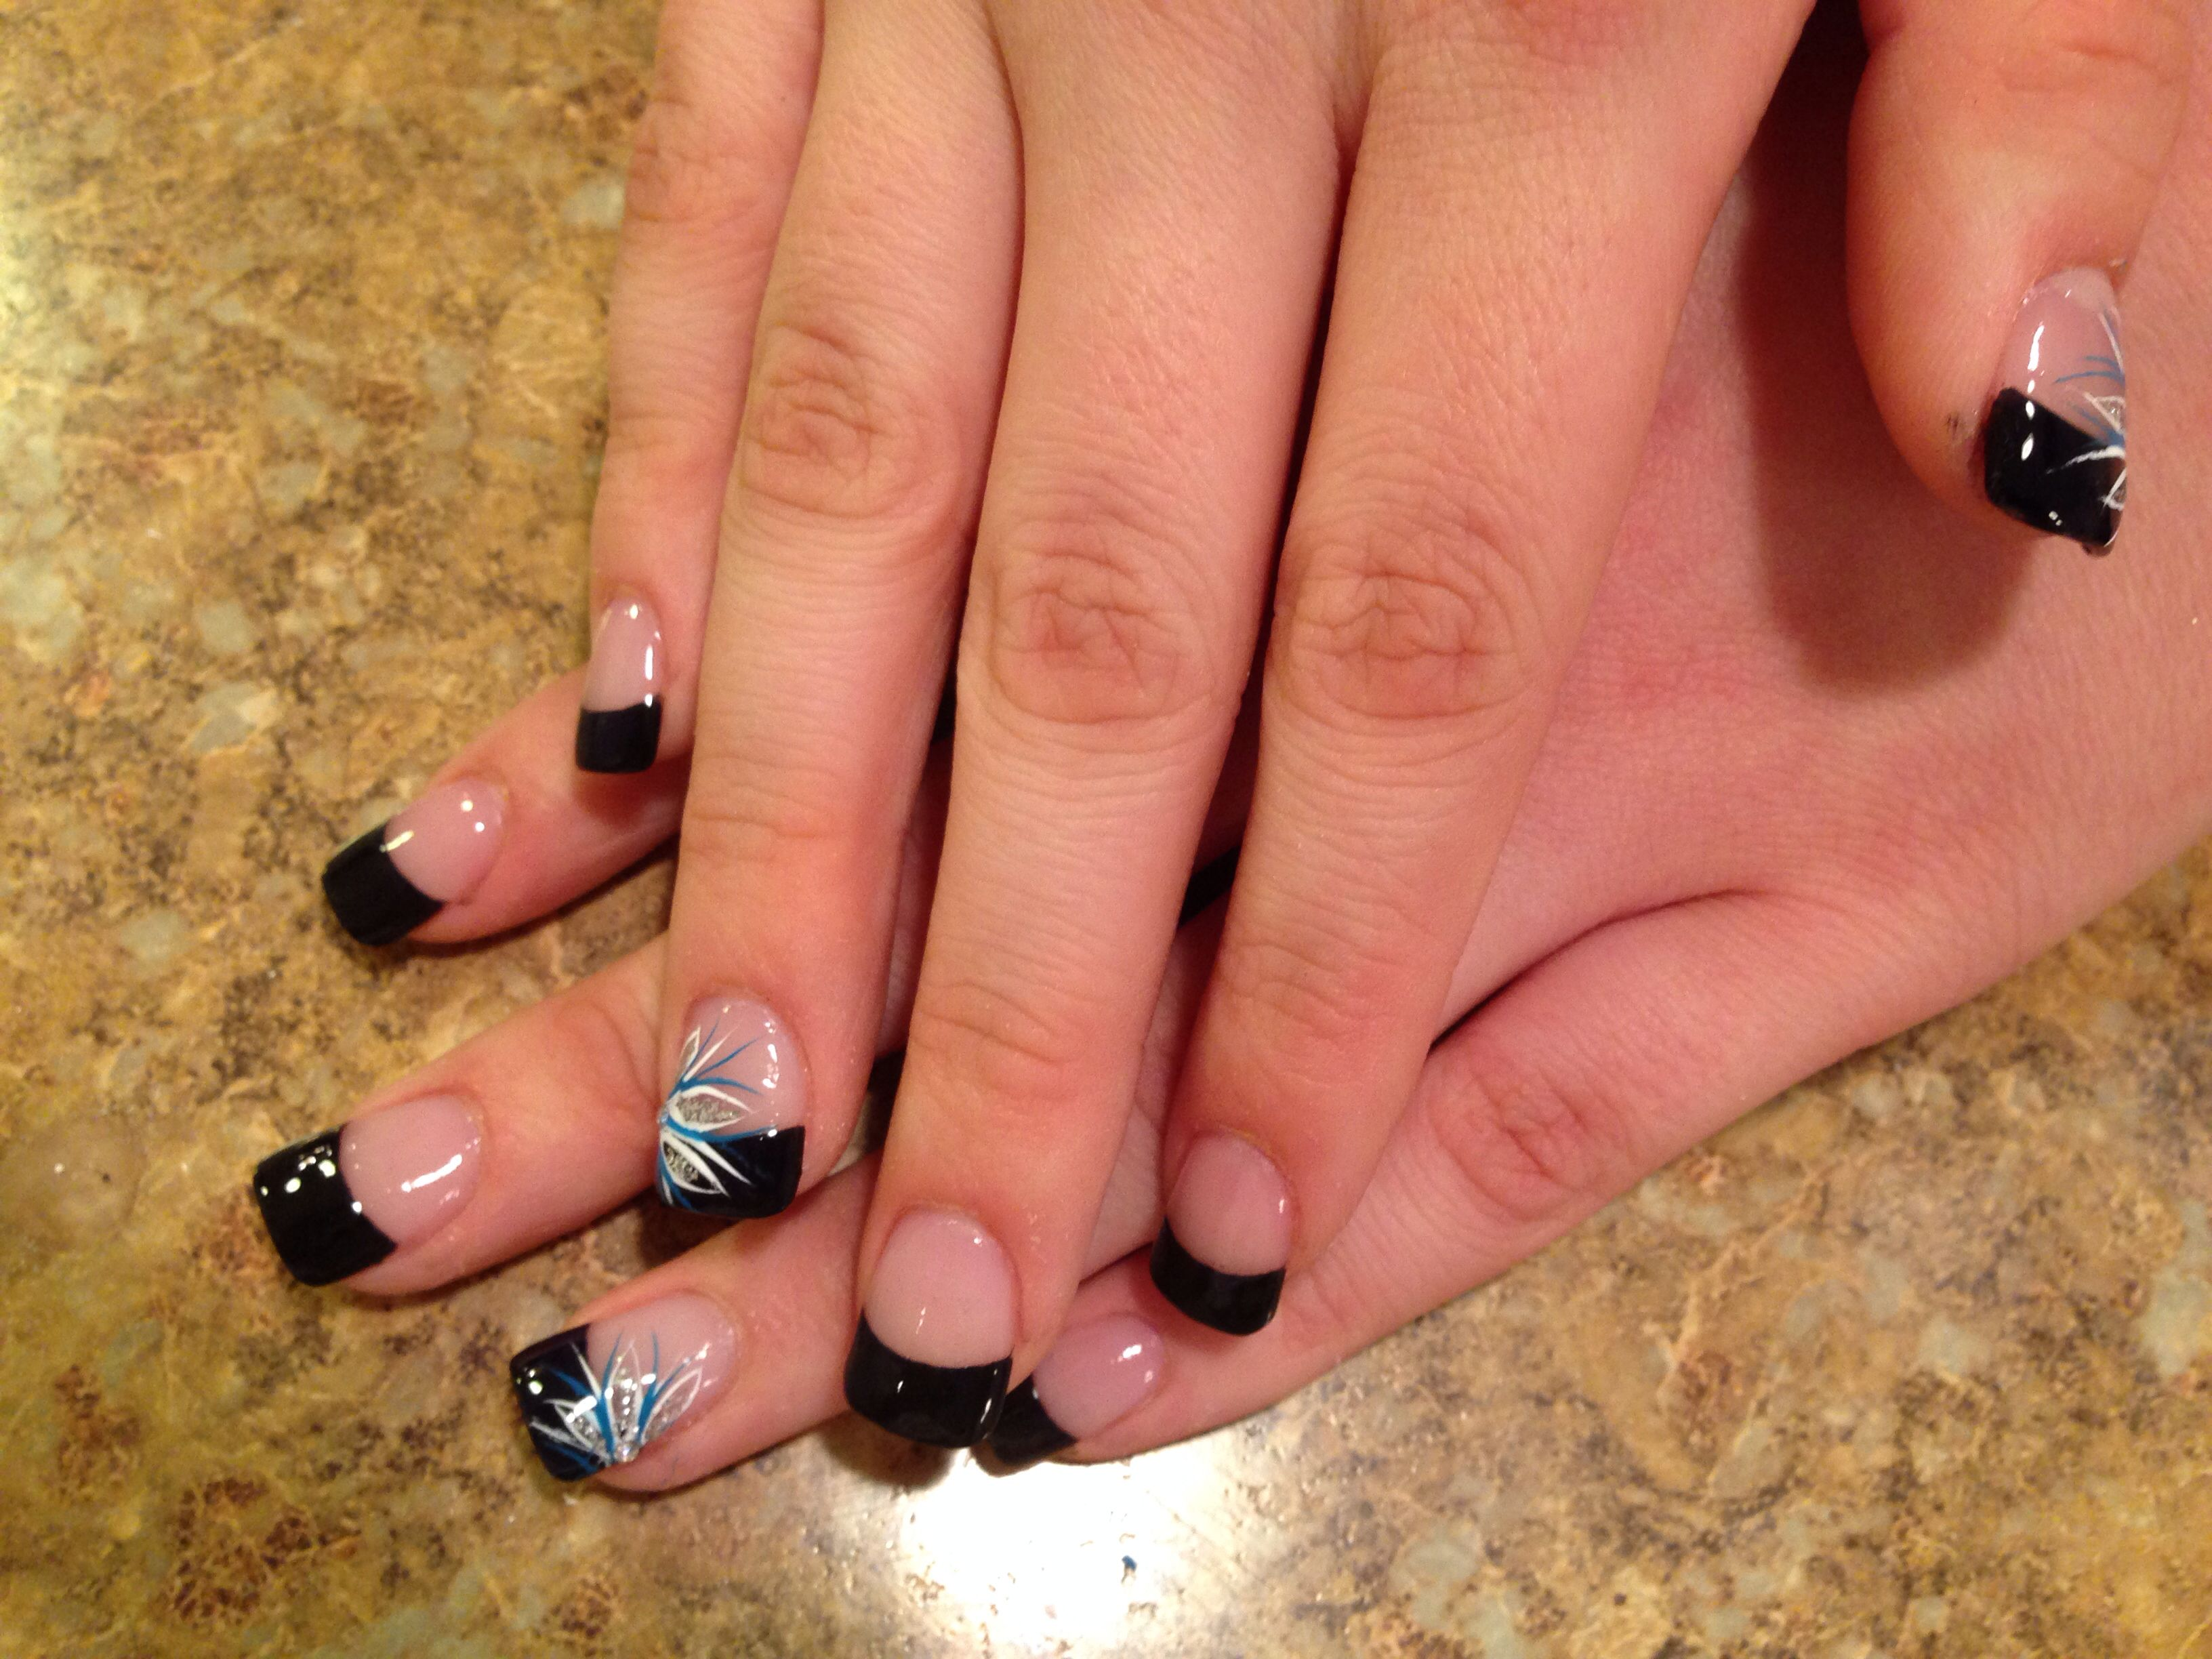 Black French tip nails with flower design. | Nails | Pinterest ...